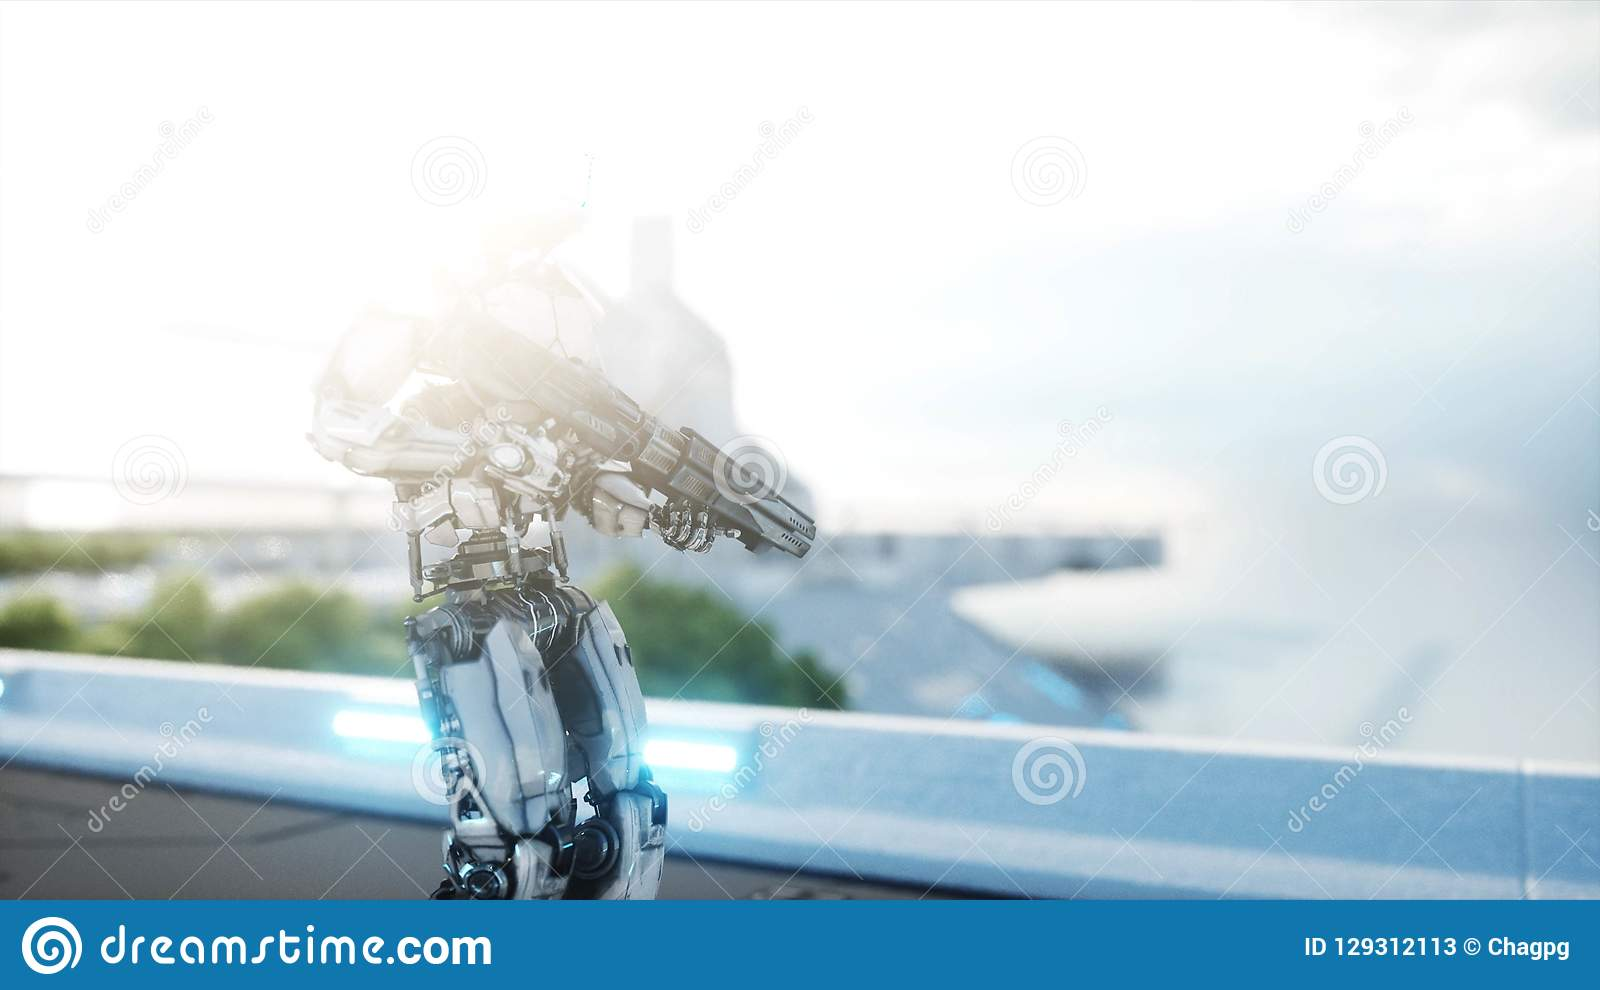 Military robot with gun walking. Futuristic city, town. 3d rendering.